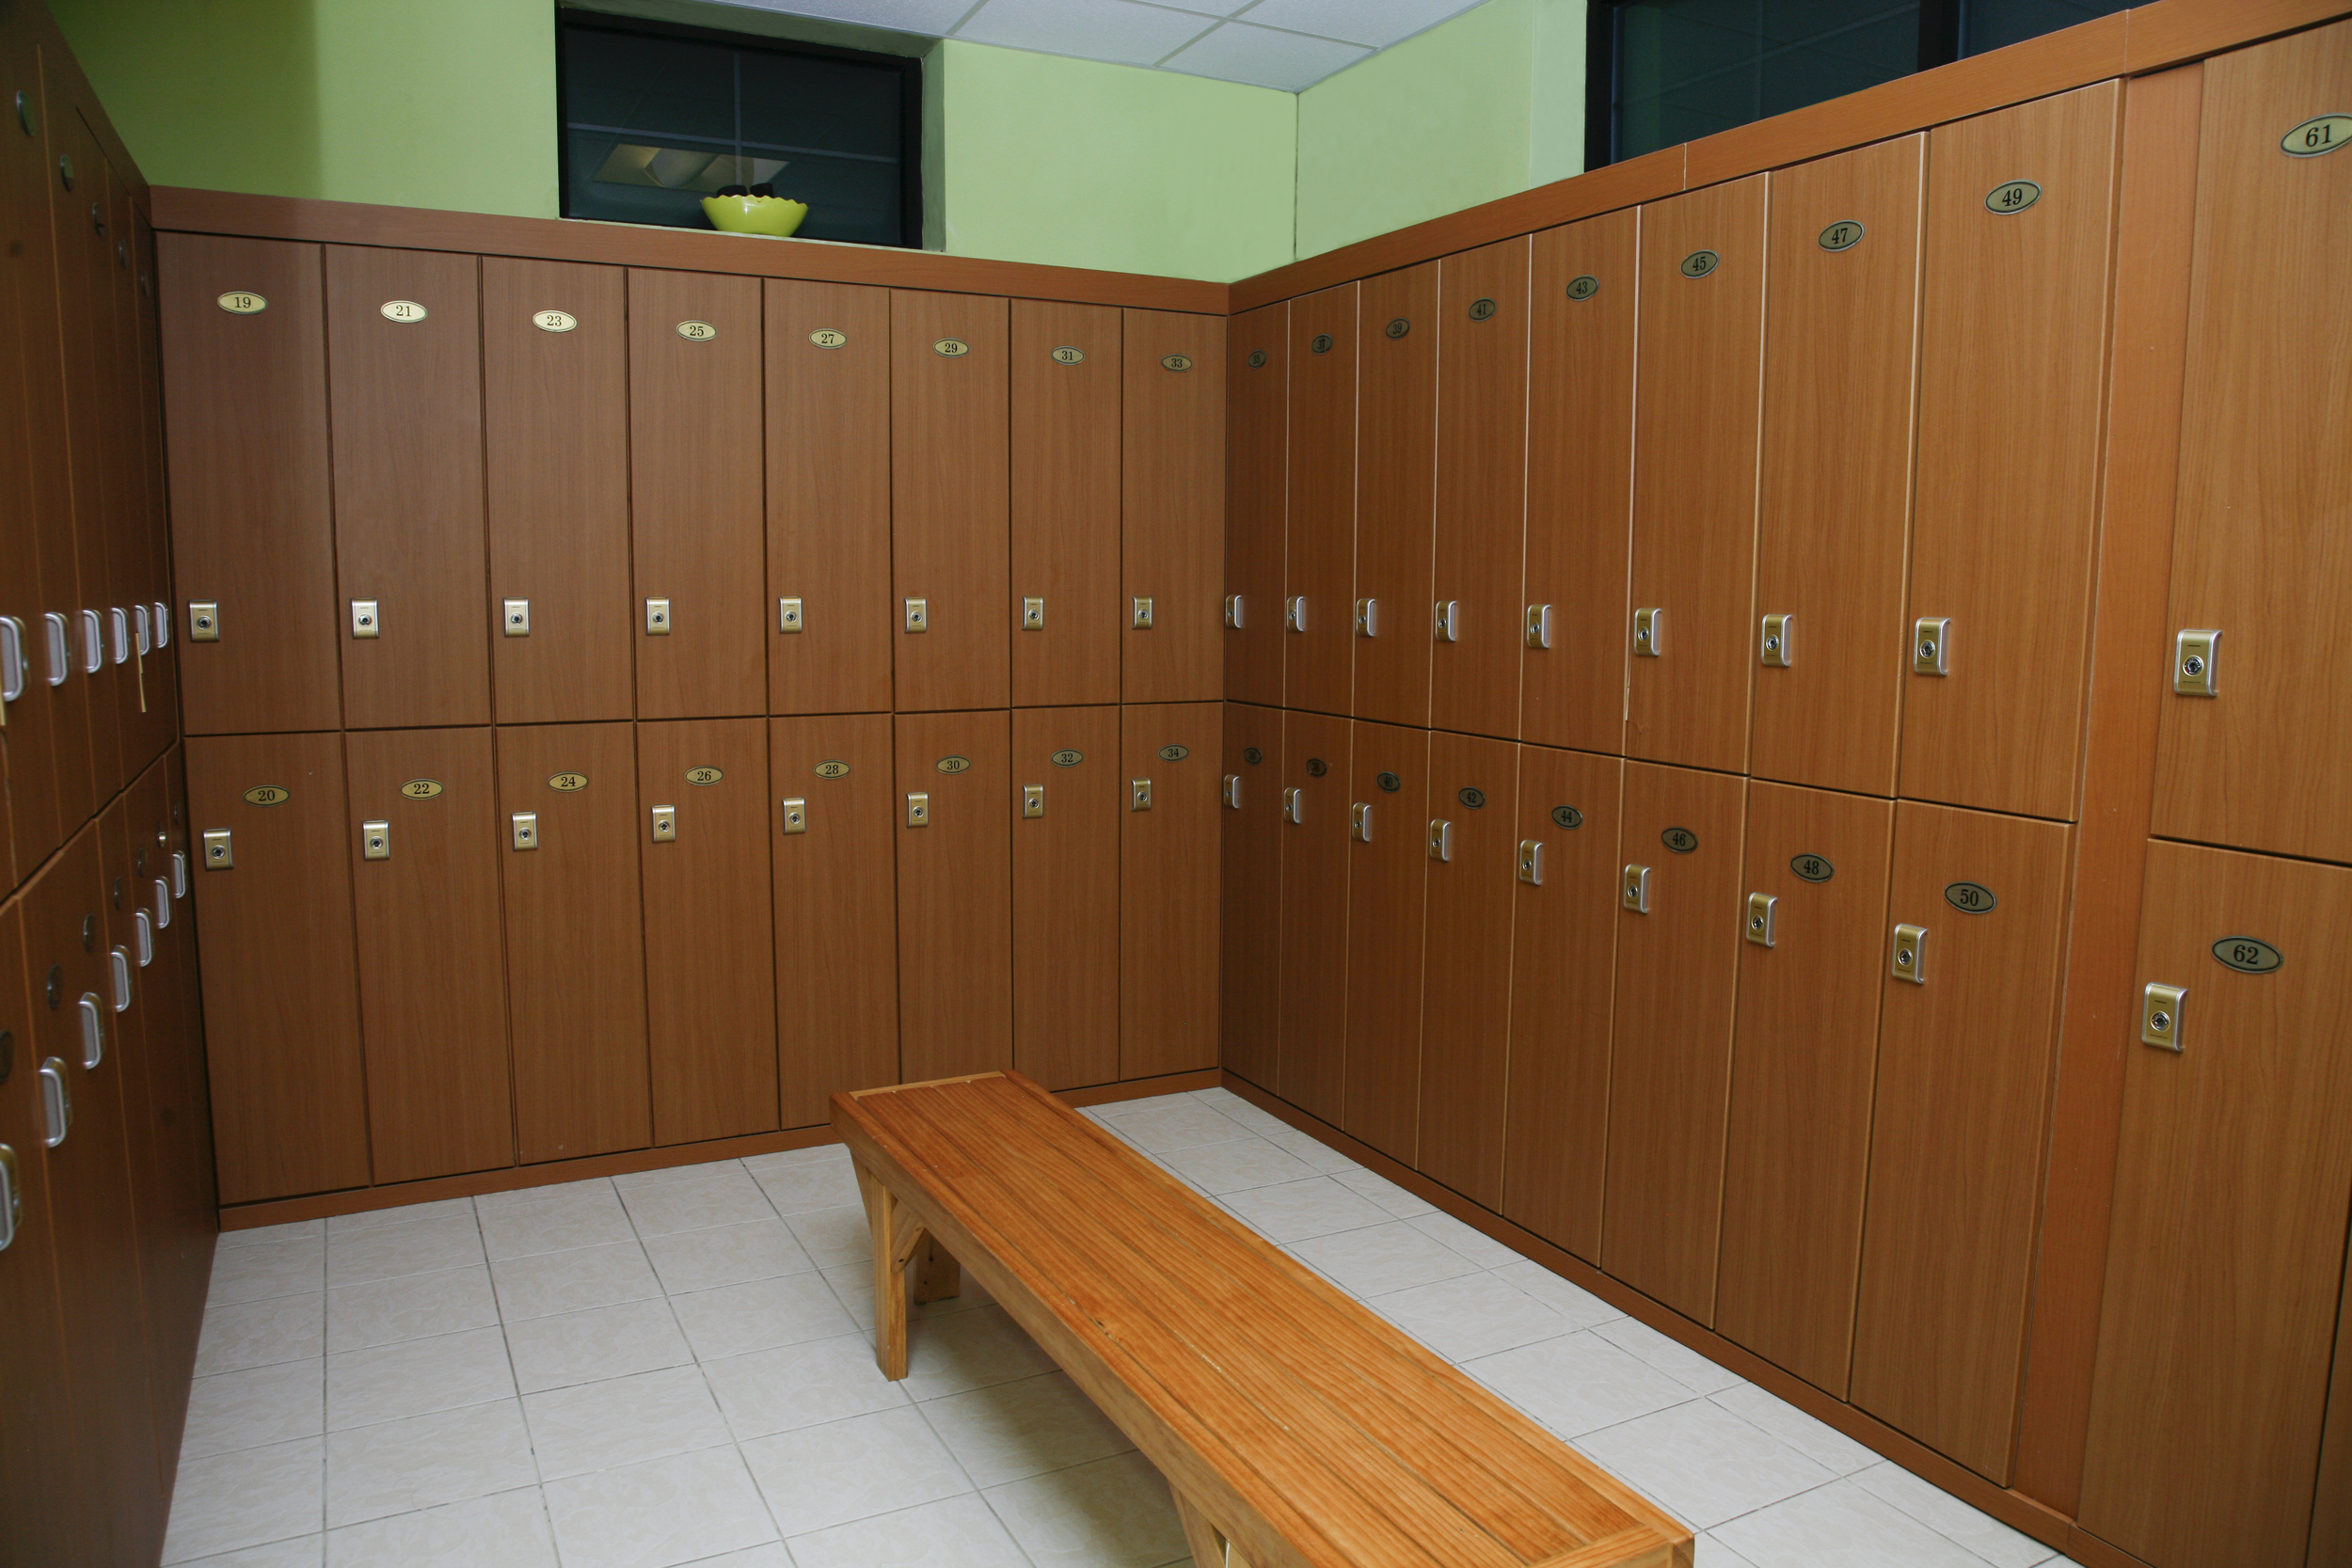 Locker Room   Our private lockers provide a place to store your personal items. Please do not leave valuables in the lockers.